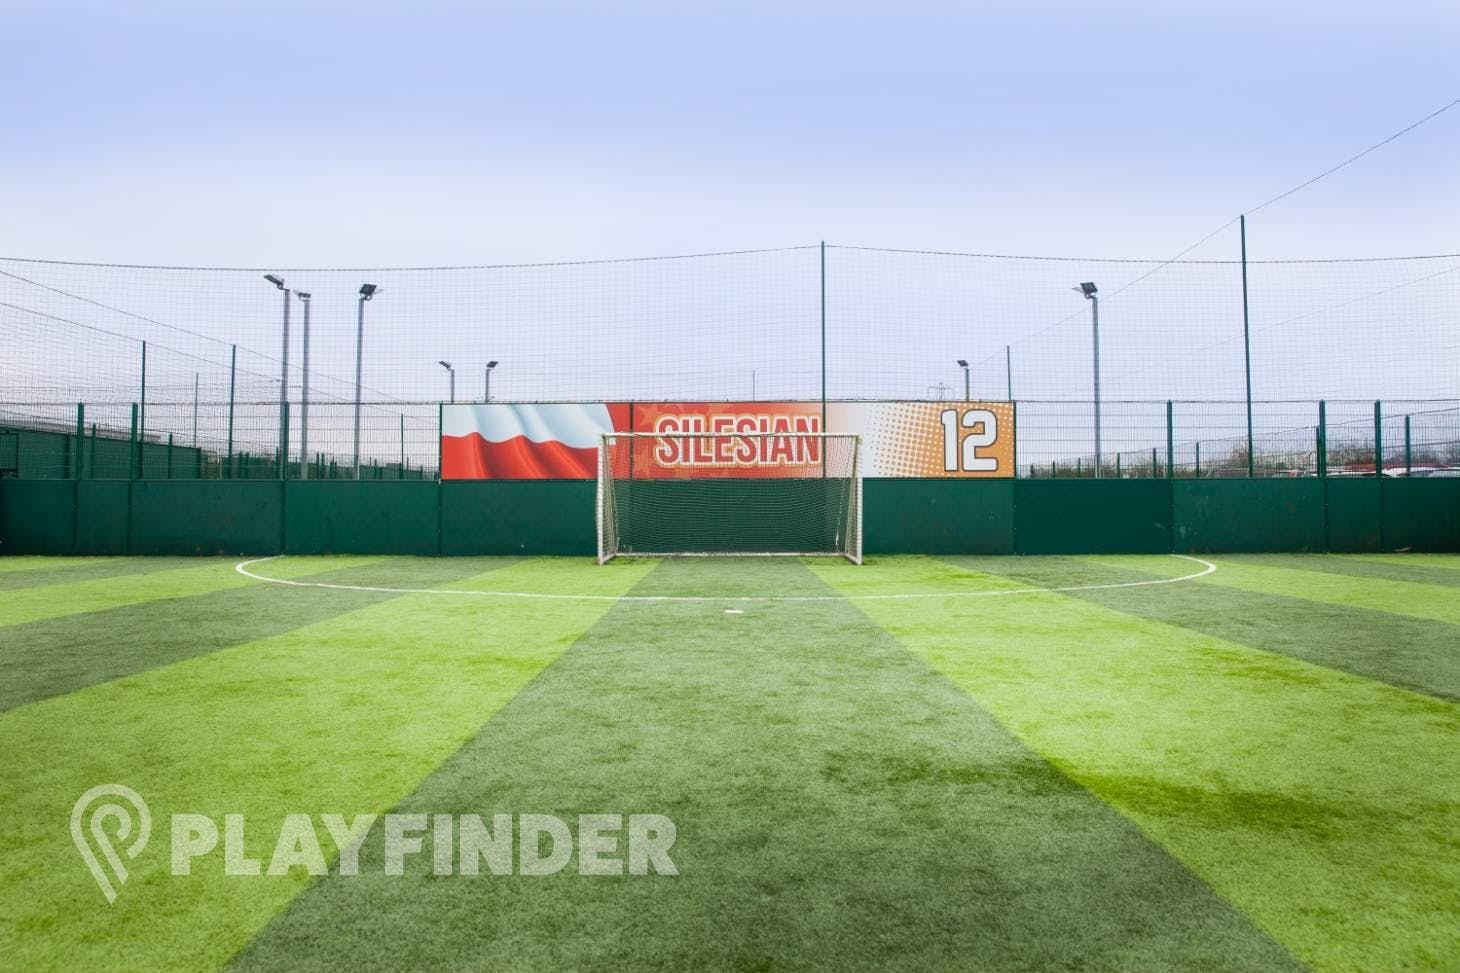 Goals Portsmouth 7 a side | 3G Astroturf football pitch